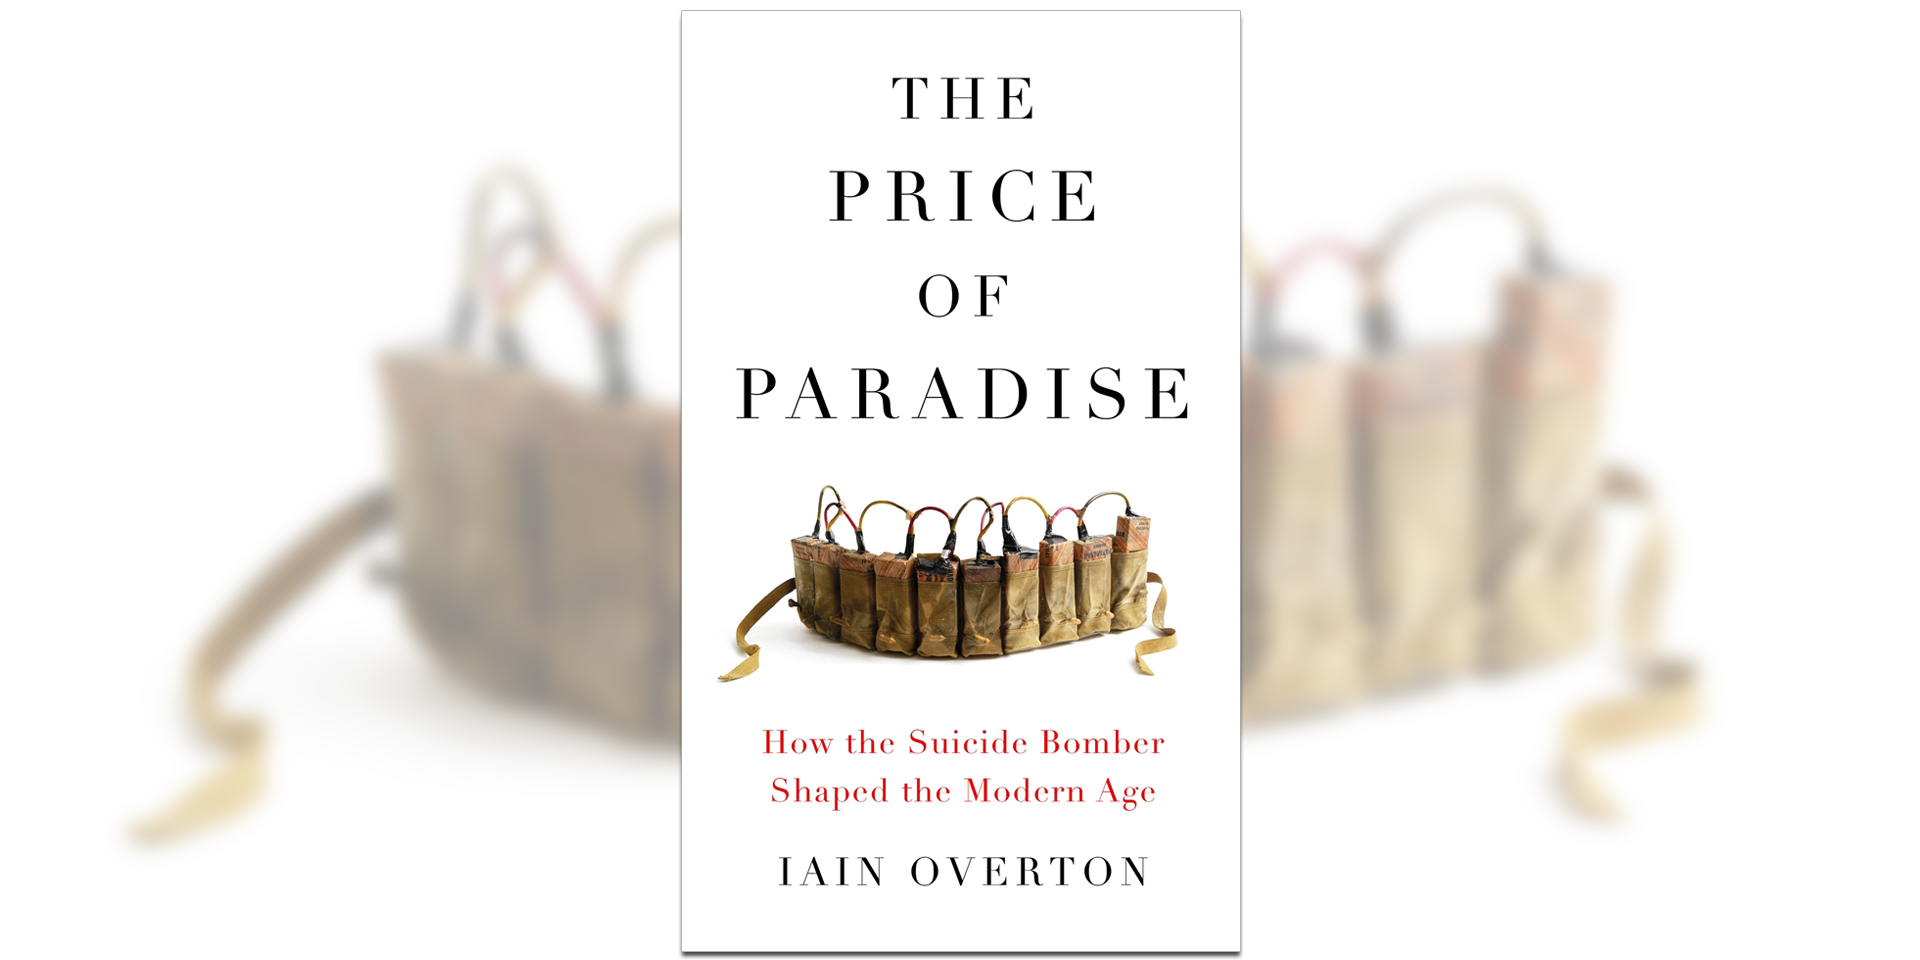 'The Price of Paradise' book cover